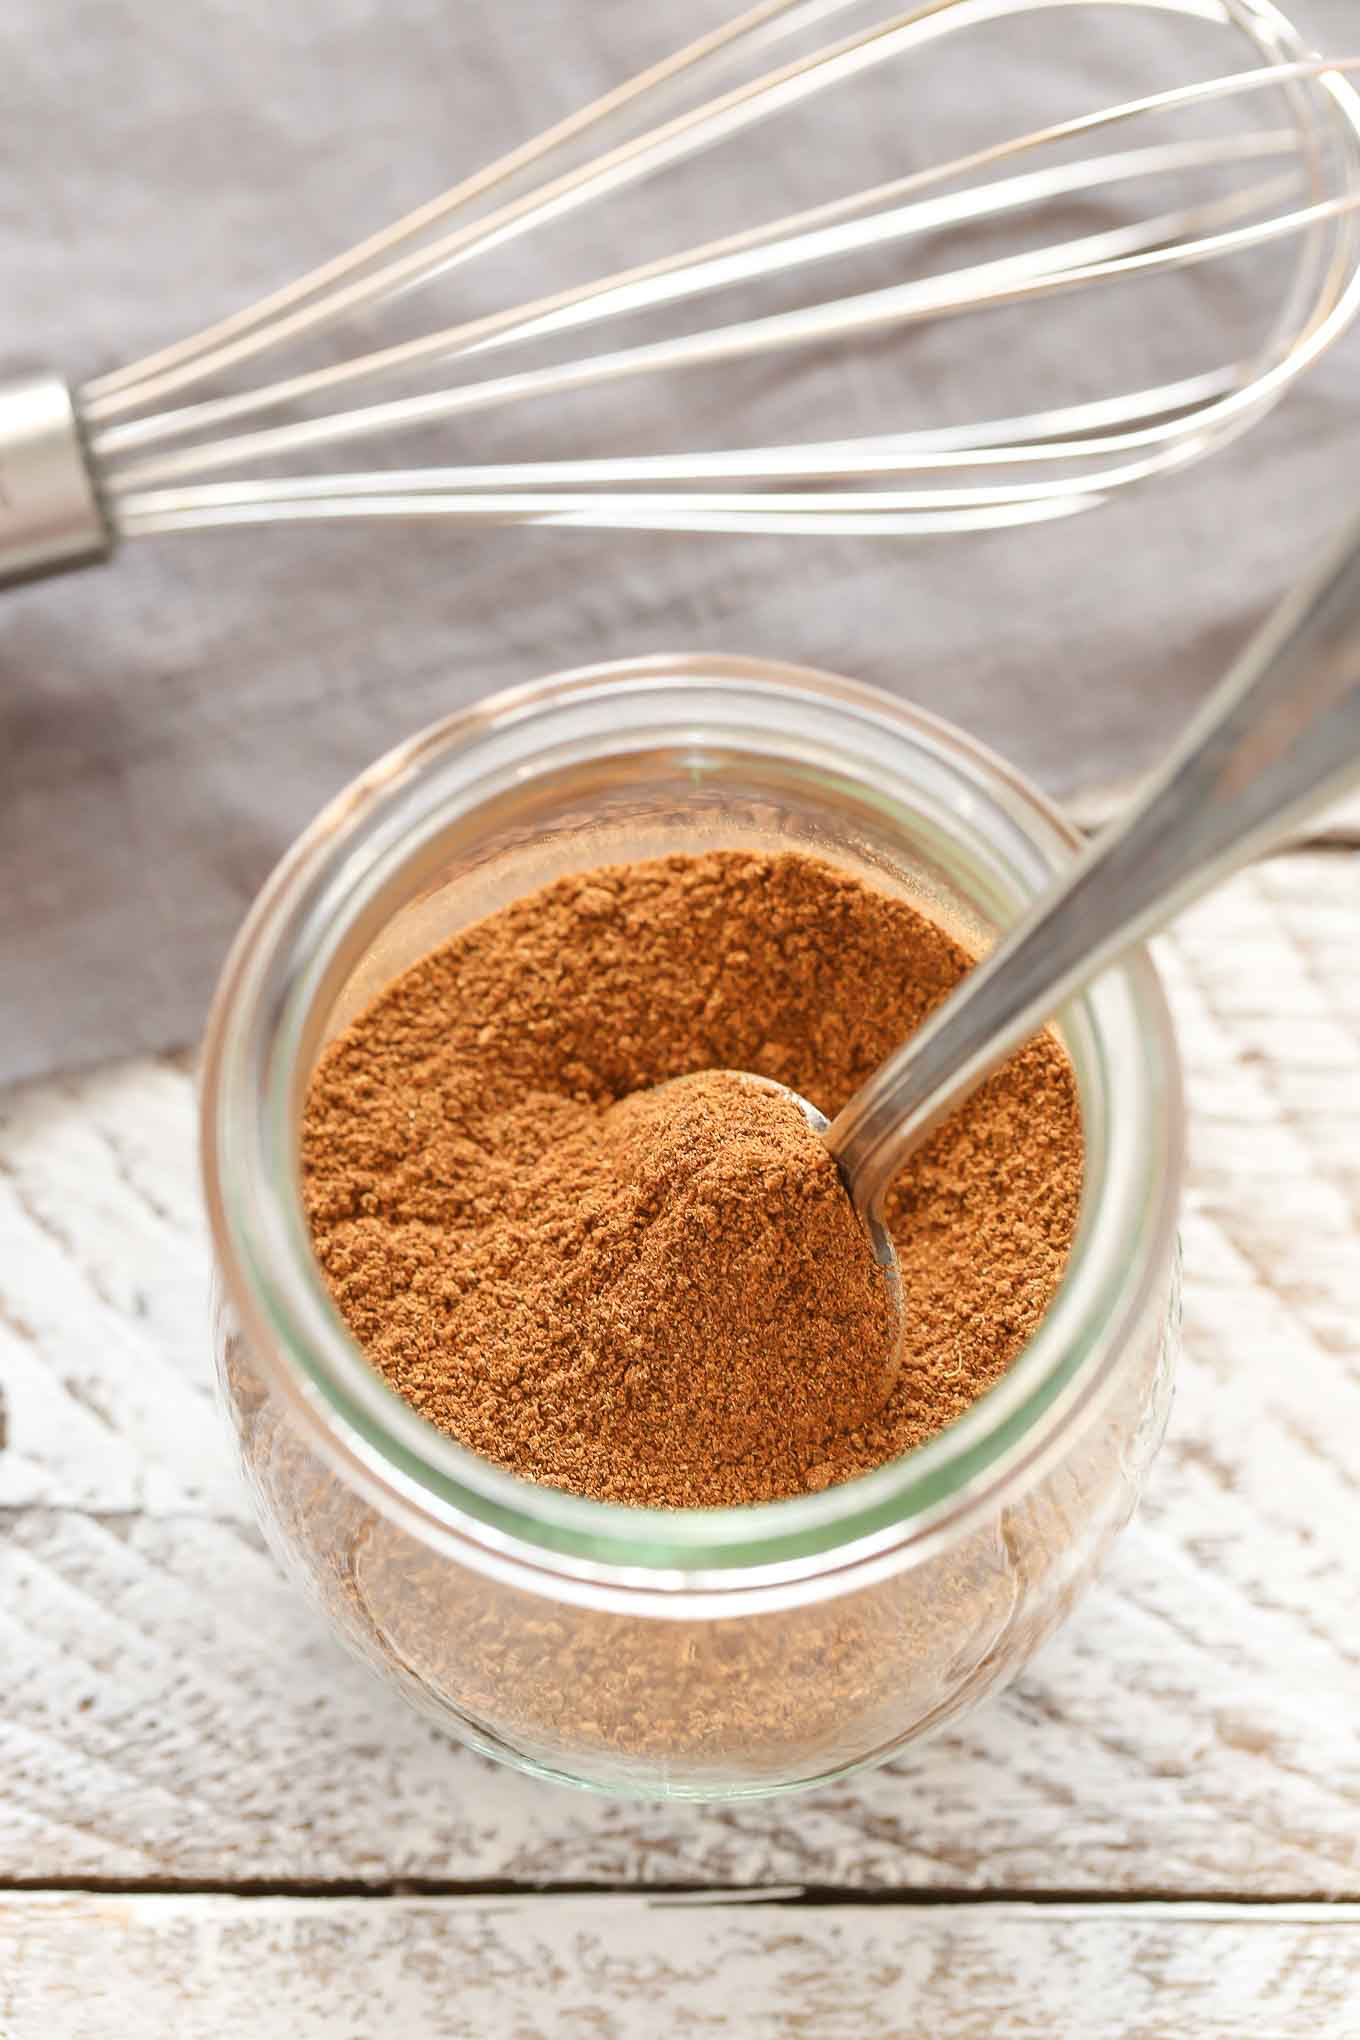 Learn how to make your own pumpkin pie spice in less than 5 minutes with just a few common spices. Perfect for fall cookies, breads, pies, and so much more!